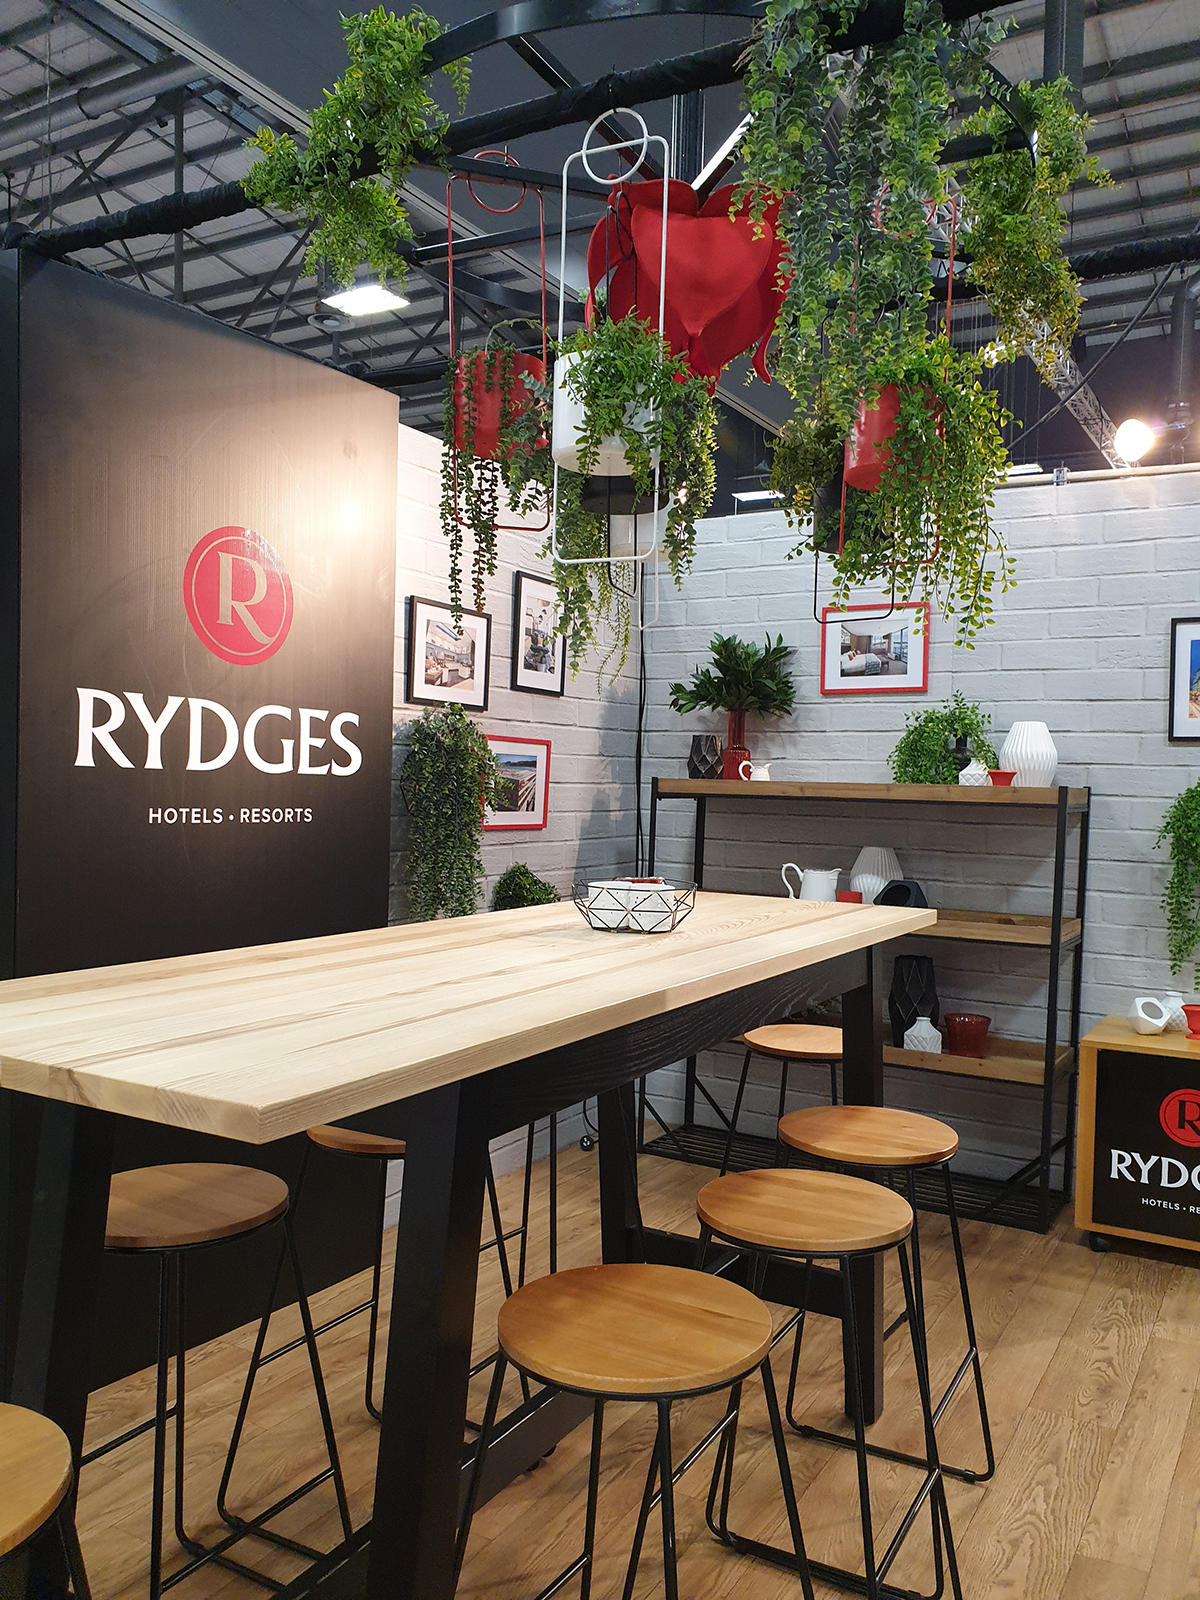 Exhibition Design ... Rydges Hotels and Resorts Expo Stand, MEETINGS 2019